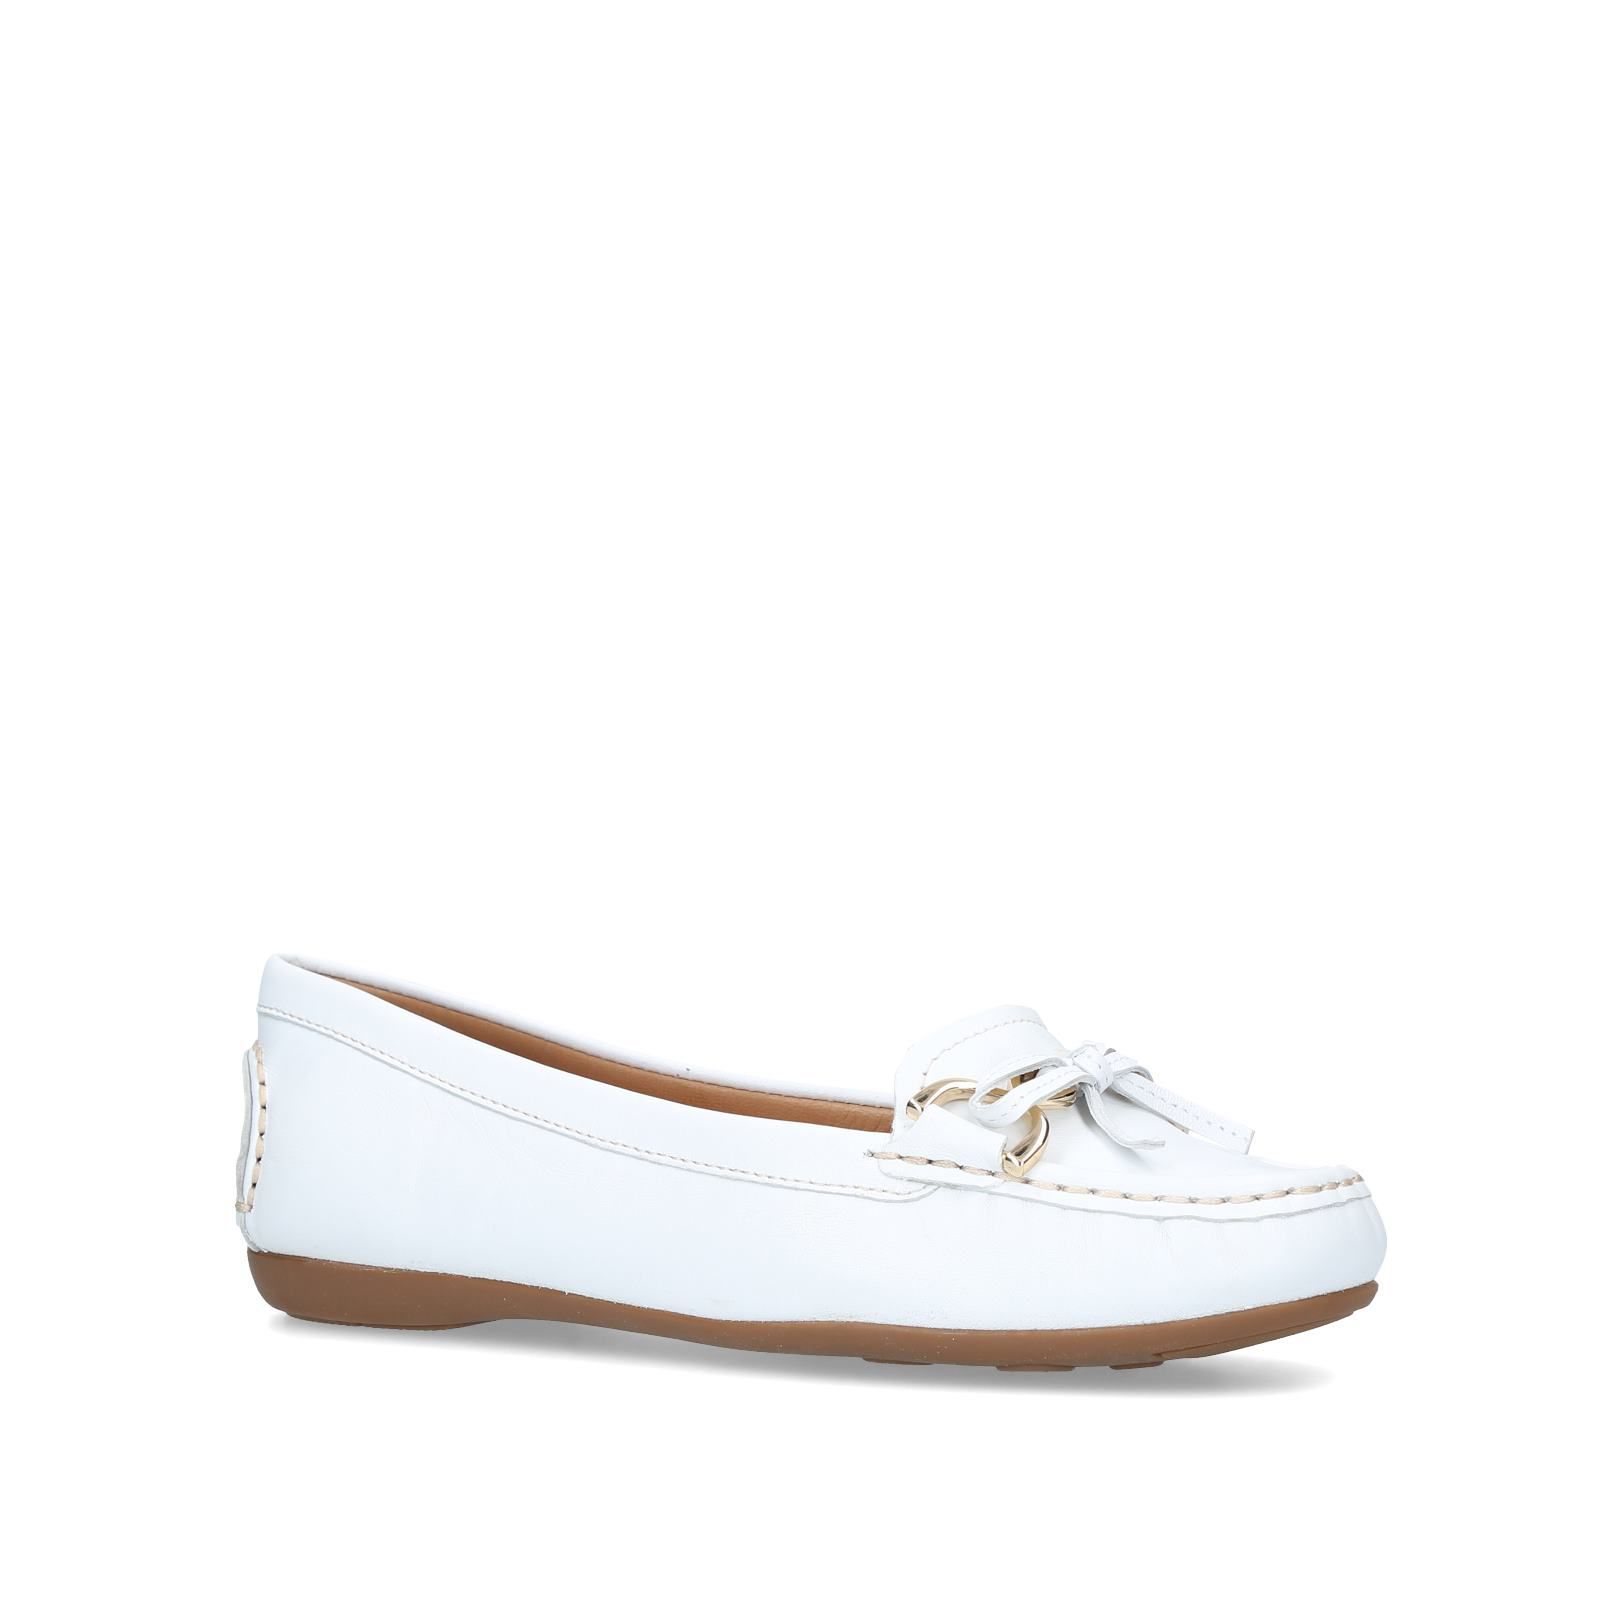 Carvela Comfort Cally Loafers, White